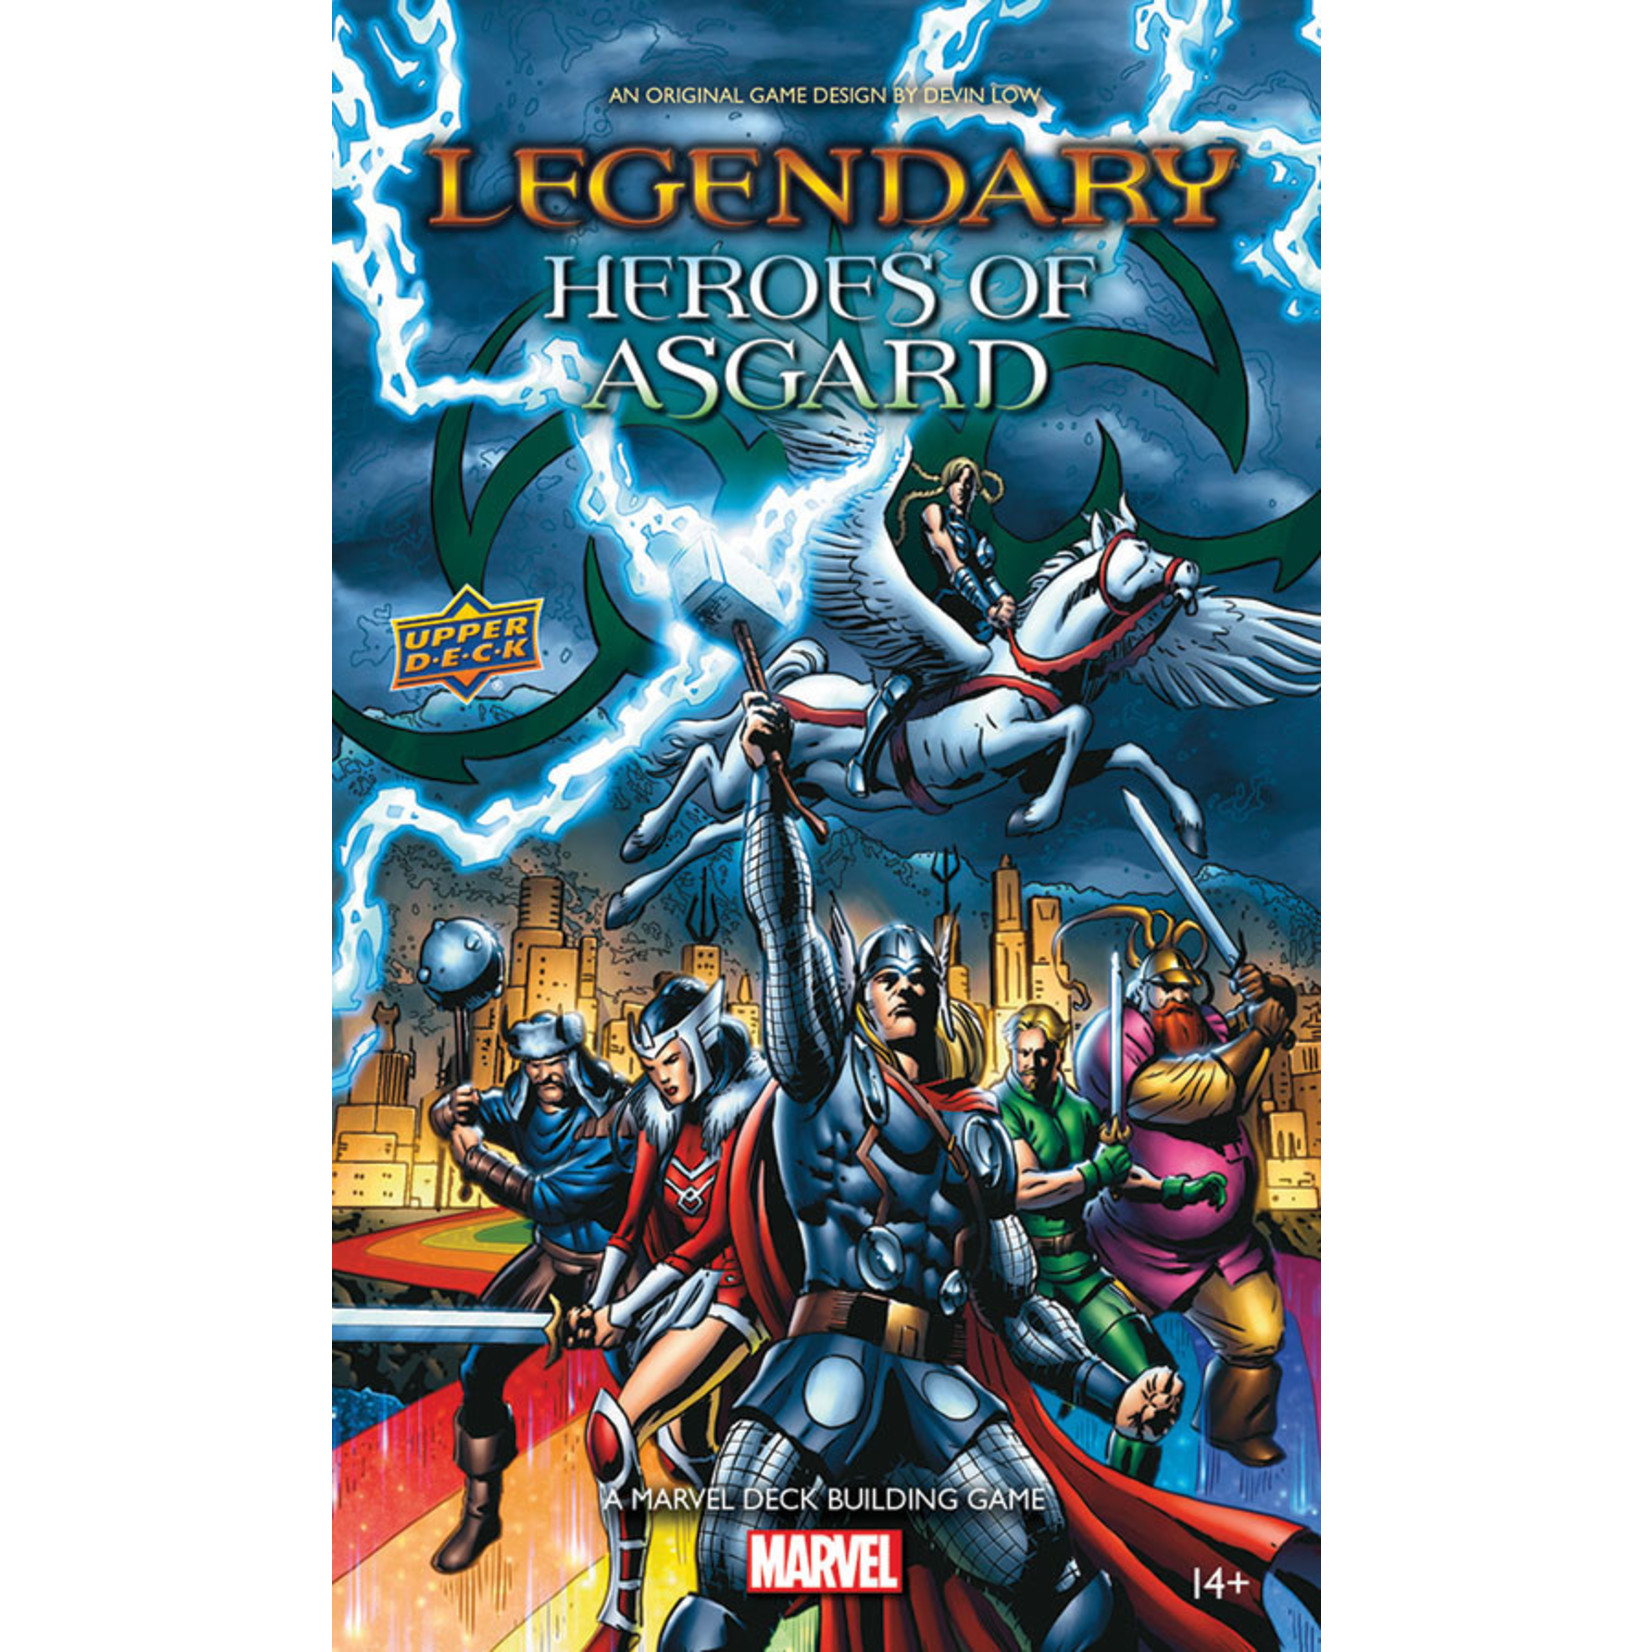 Legendary DBG: Heroes of Asgard Expansion